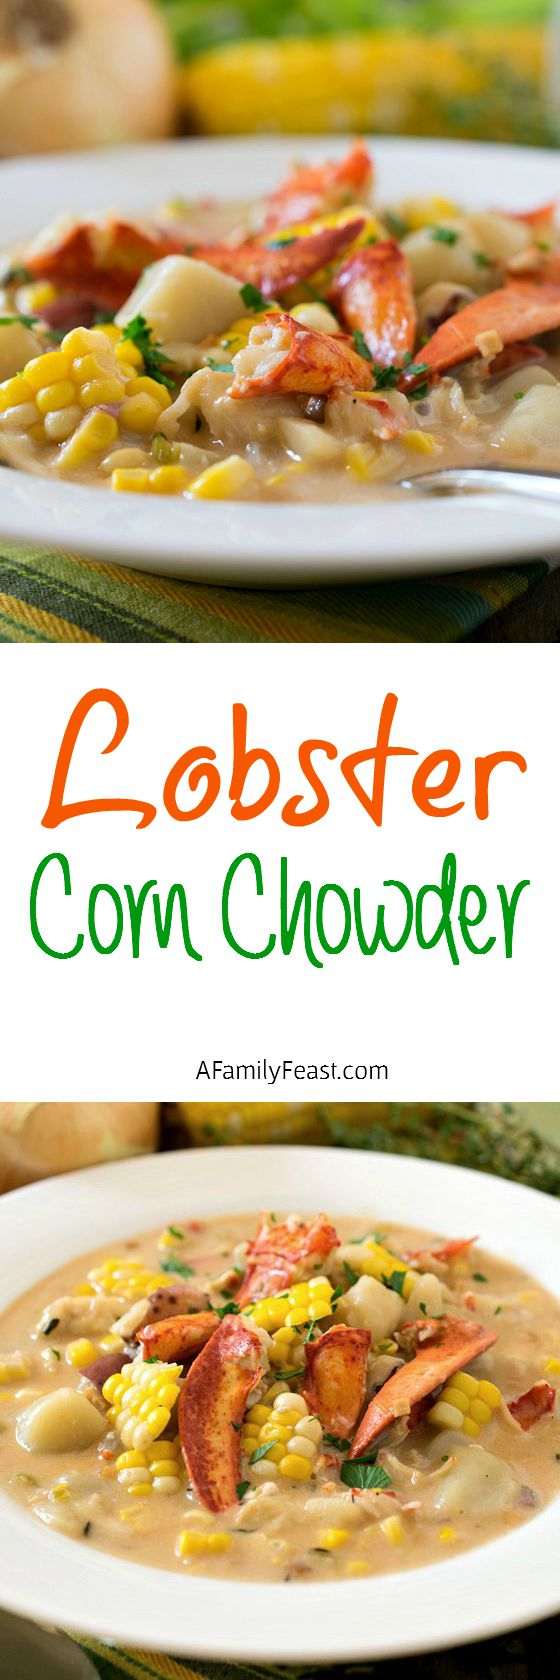 Lobster Corn Chowder - The tastes of summer at the beach in a bowl! A light and creamy super flavorful broth loaded with chunks of lobster, corn and potatoes.